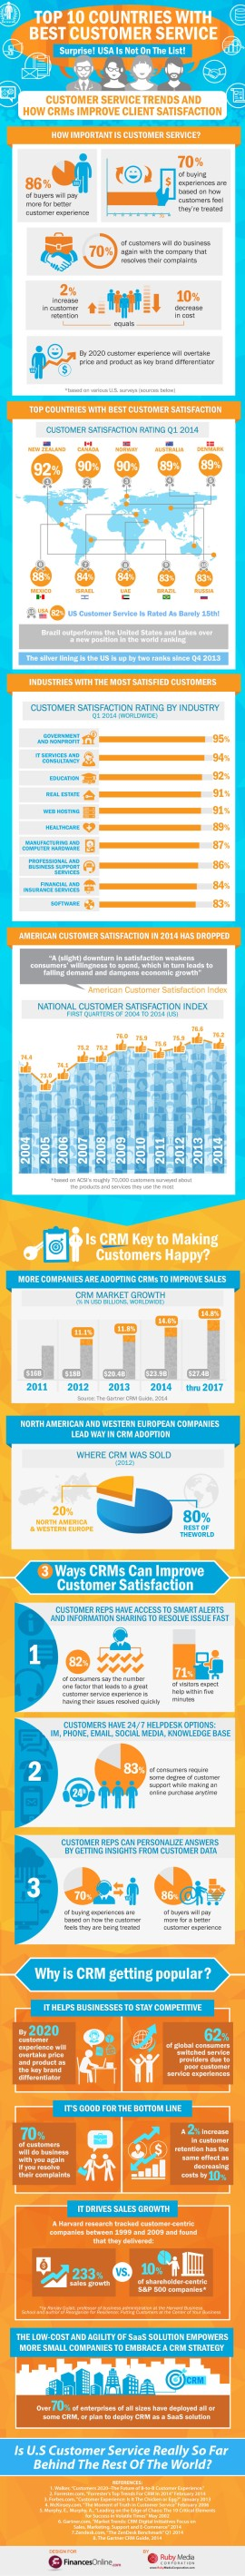 Top 10 Countries with Best Customer Service_infographic